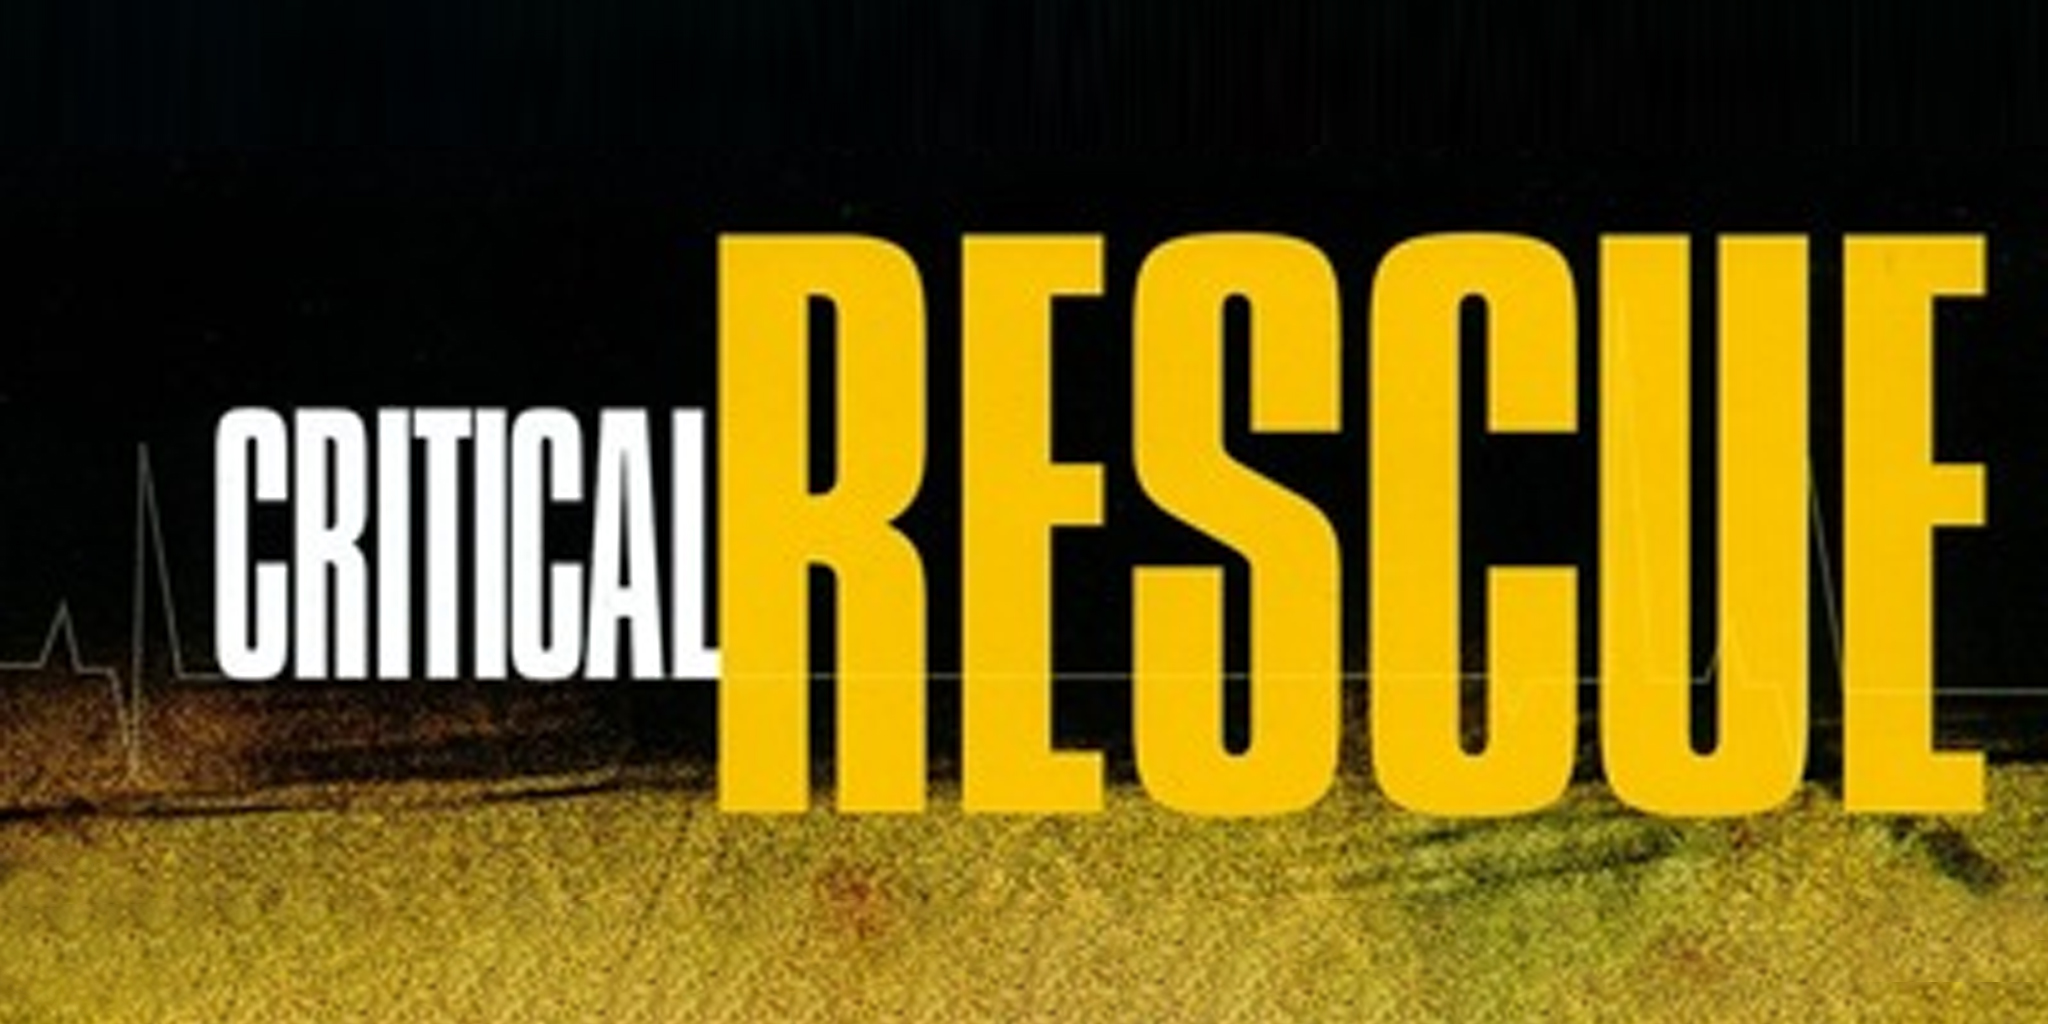 Critical Rescue [TV Series]